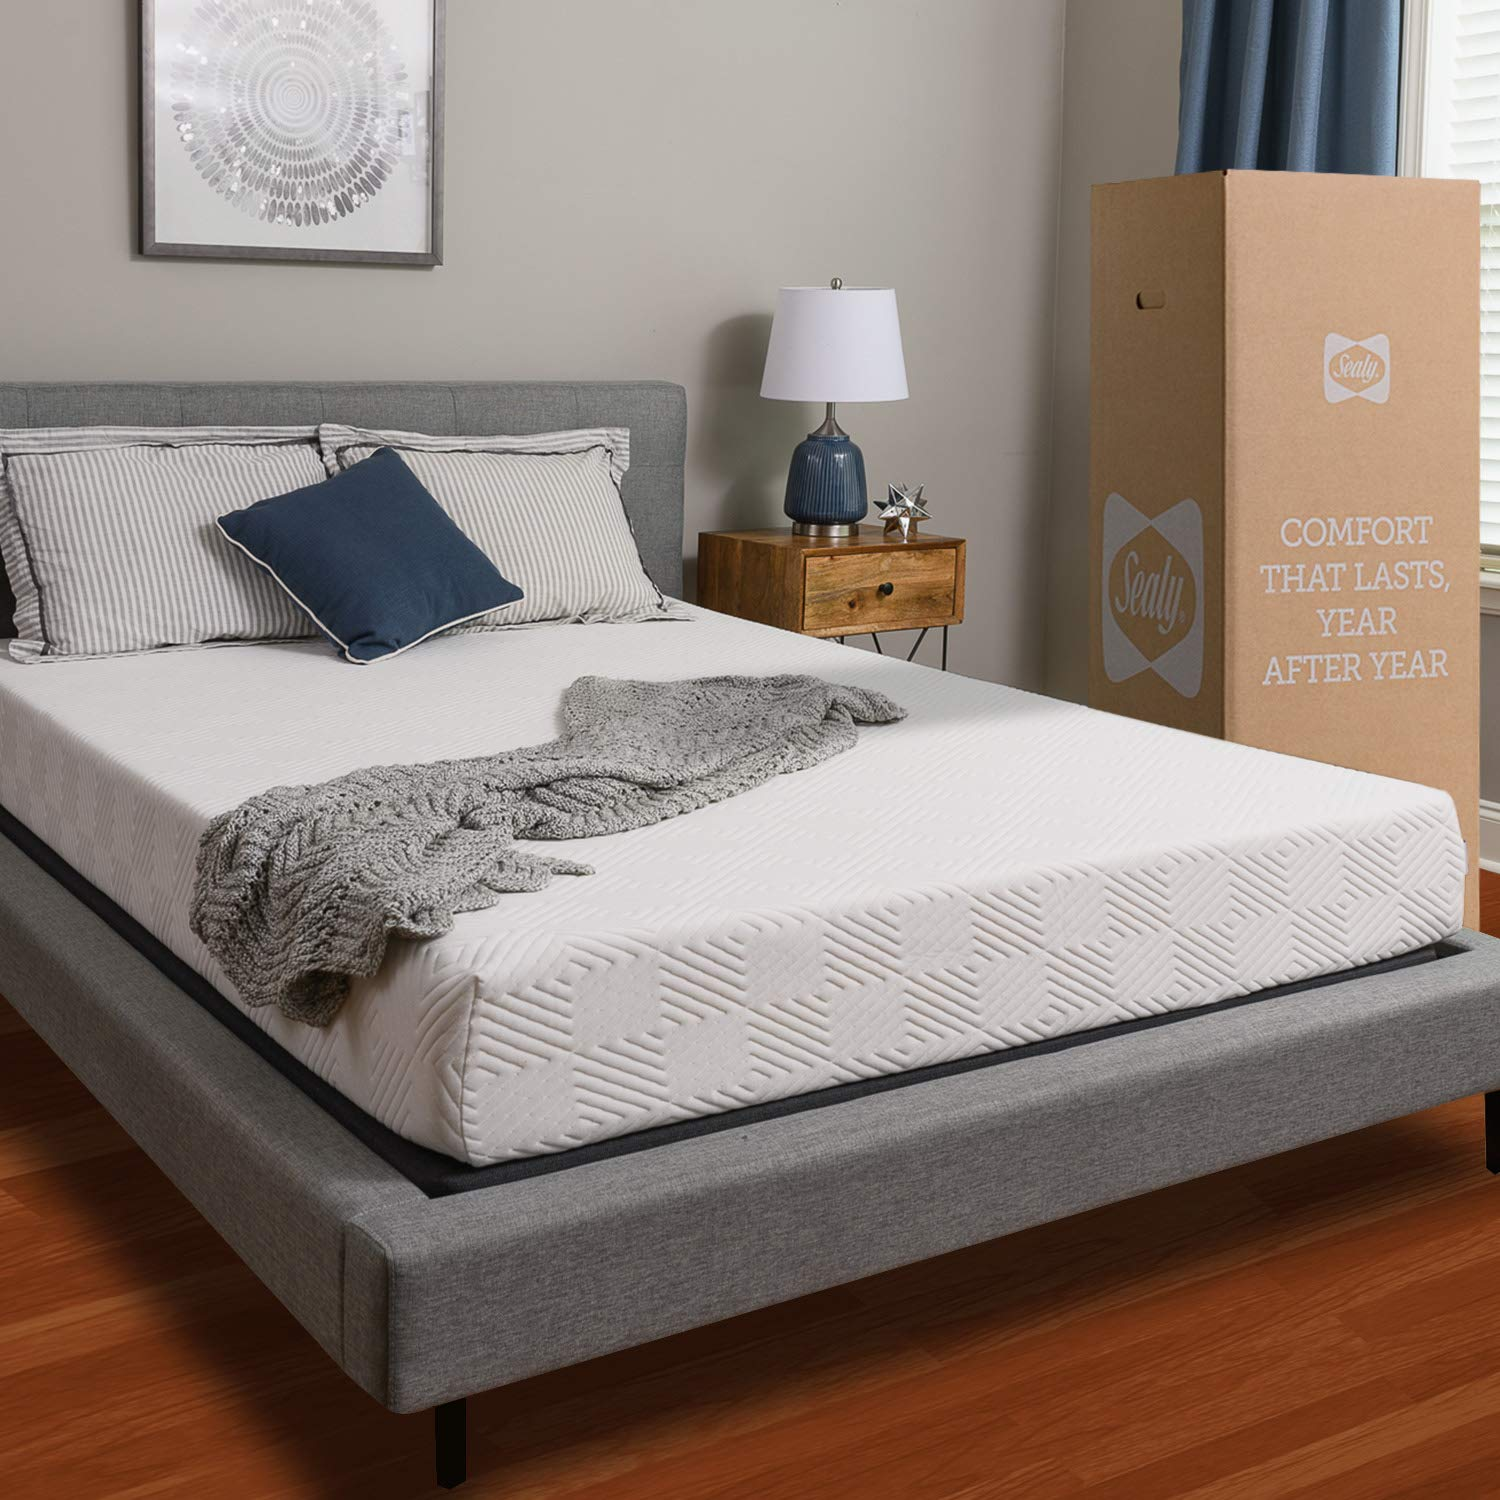 Sealy 8-Inch Memory Foam Bed in a Box, Medium-Firm, Twin by Sealy